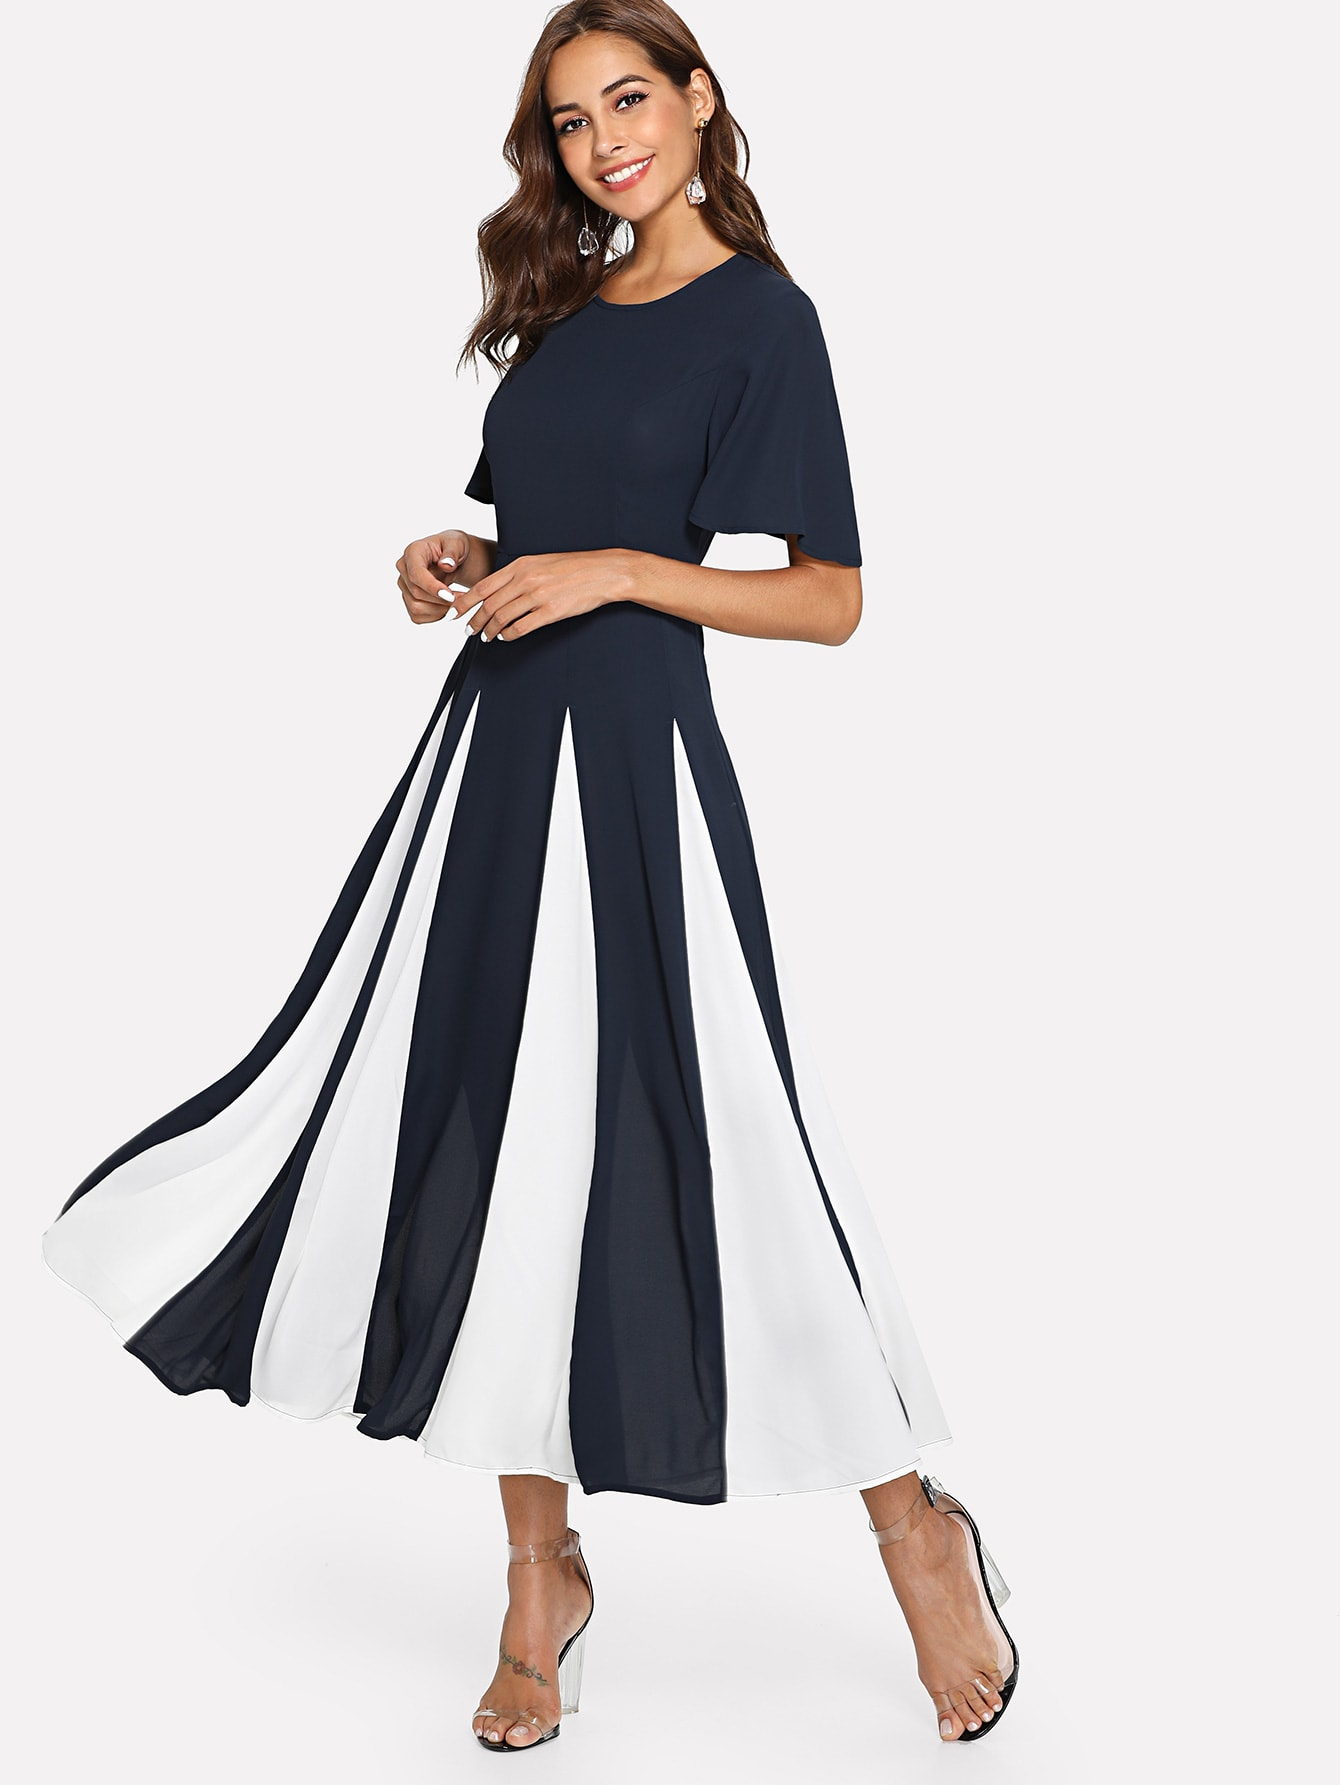 Flutter Sleeve Cut and Sew Dress buttoned closure back cut and sew cap sleeve top